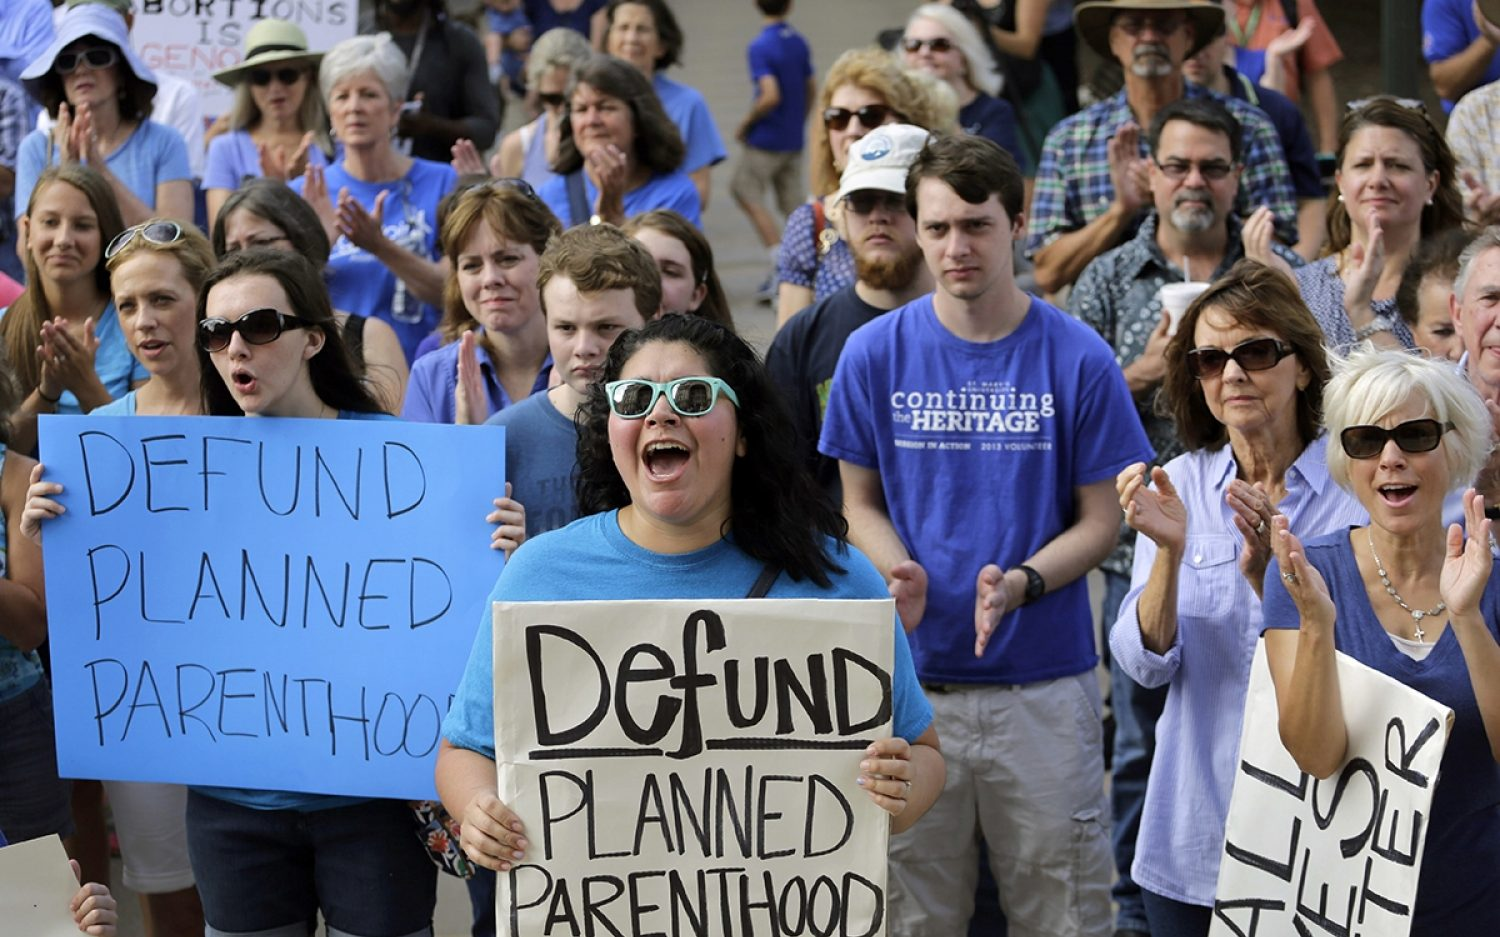 Battle over sanctuary cities for the unborn cools down